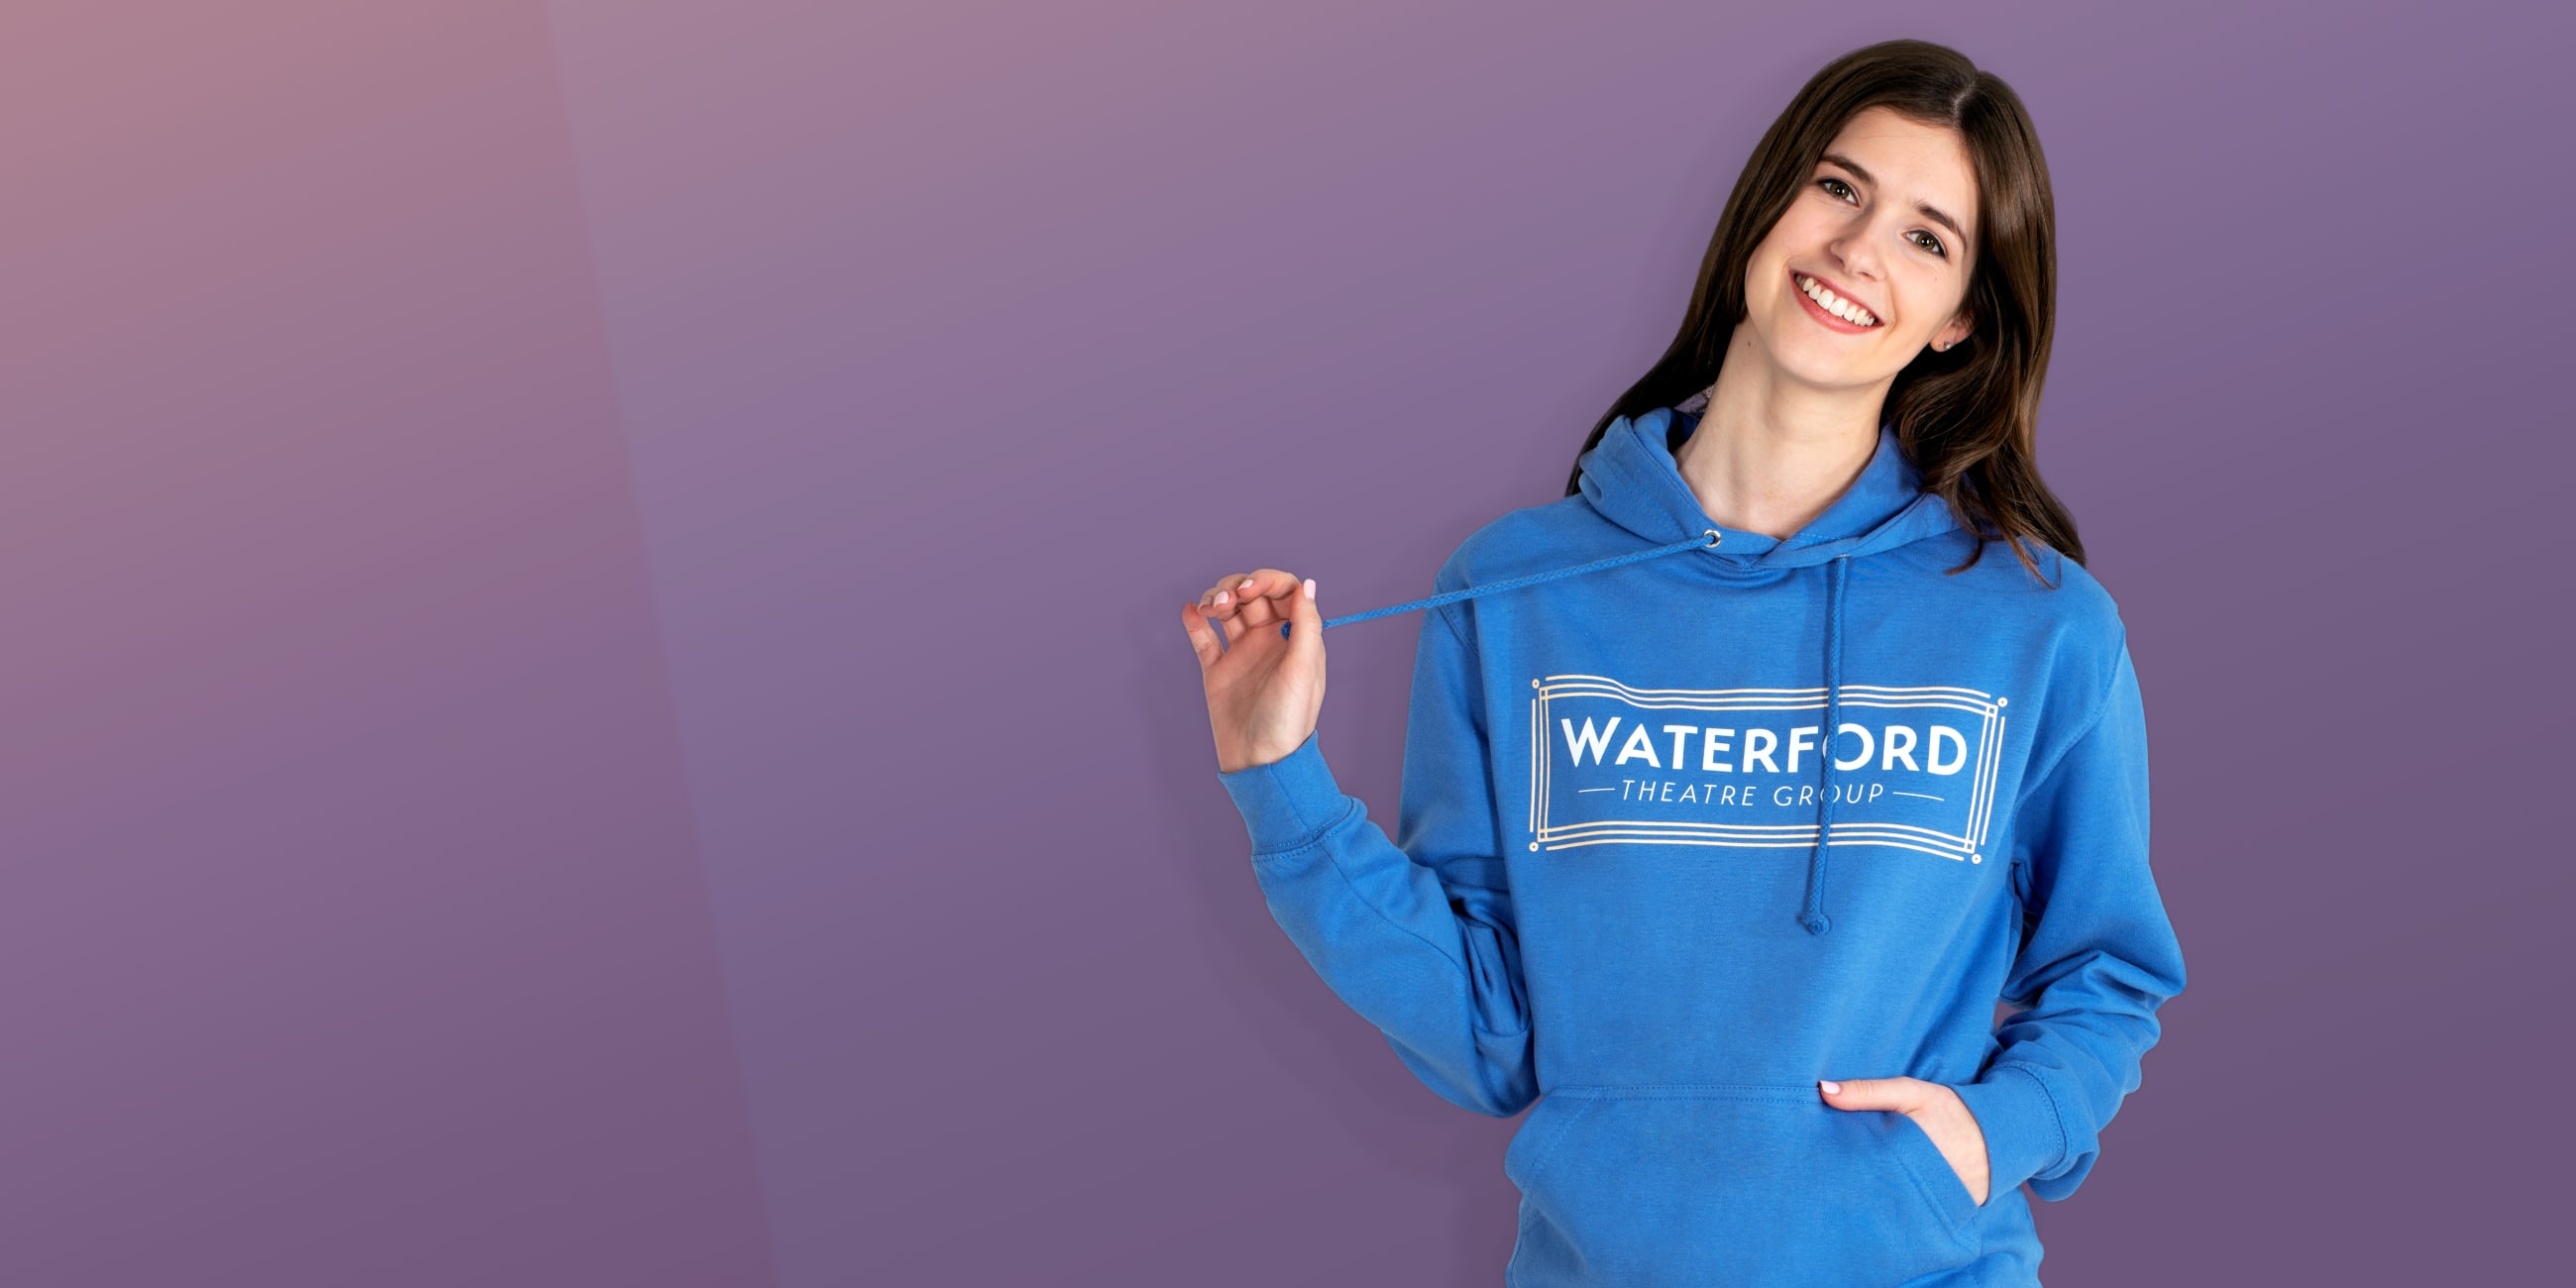 Dance and theatre group logo hoodies